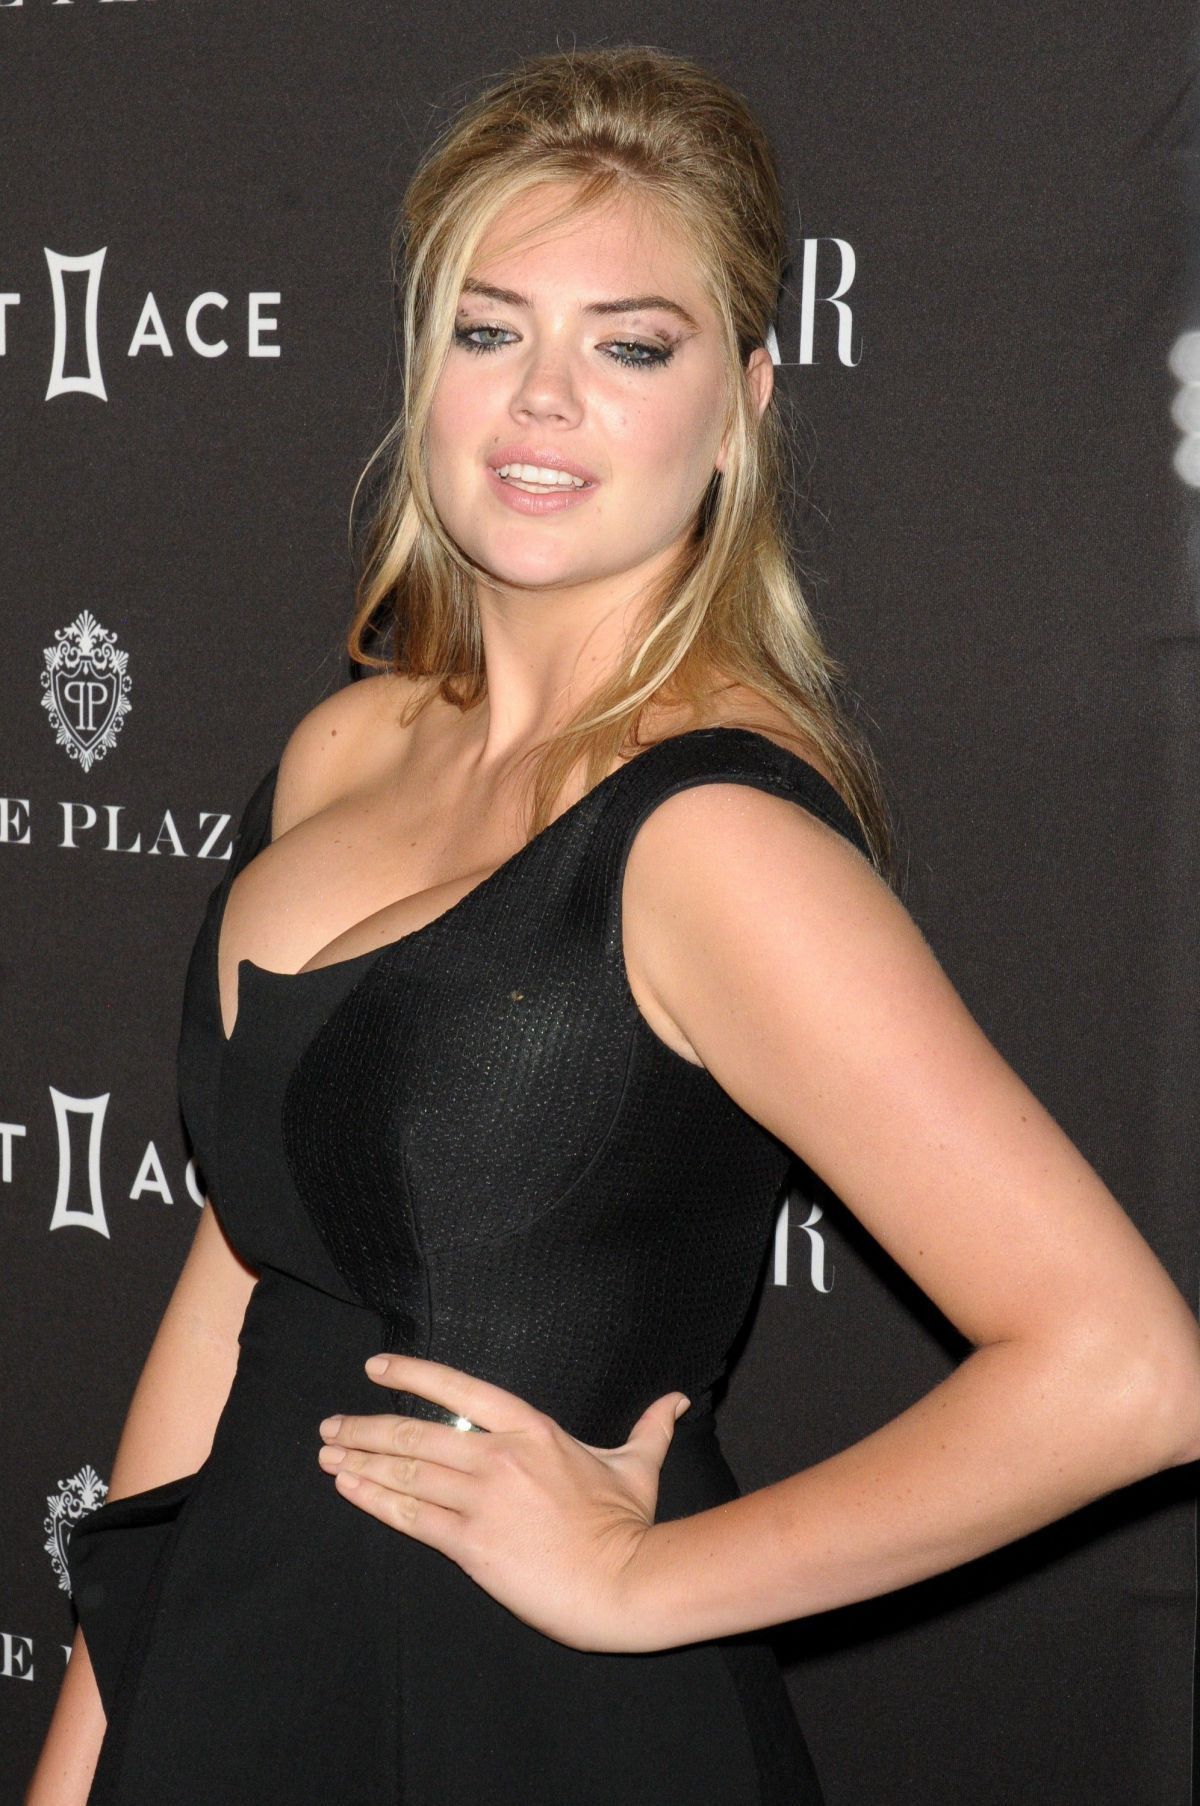 kate upton at 2015 harper�s bazaar icons event in new york